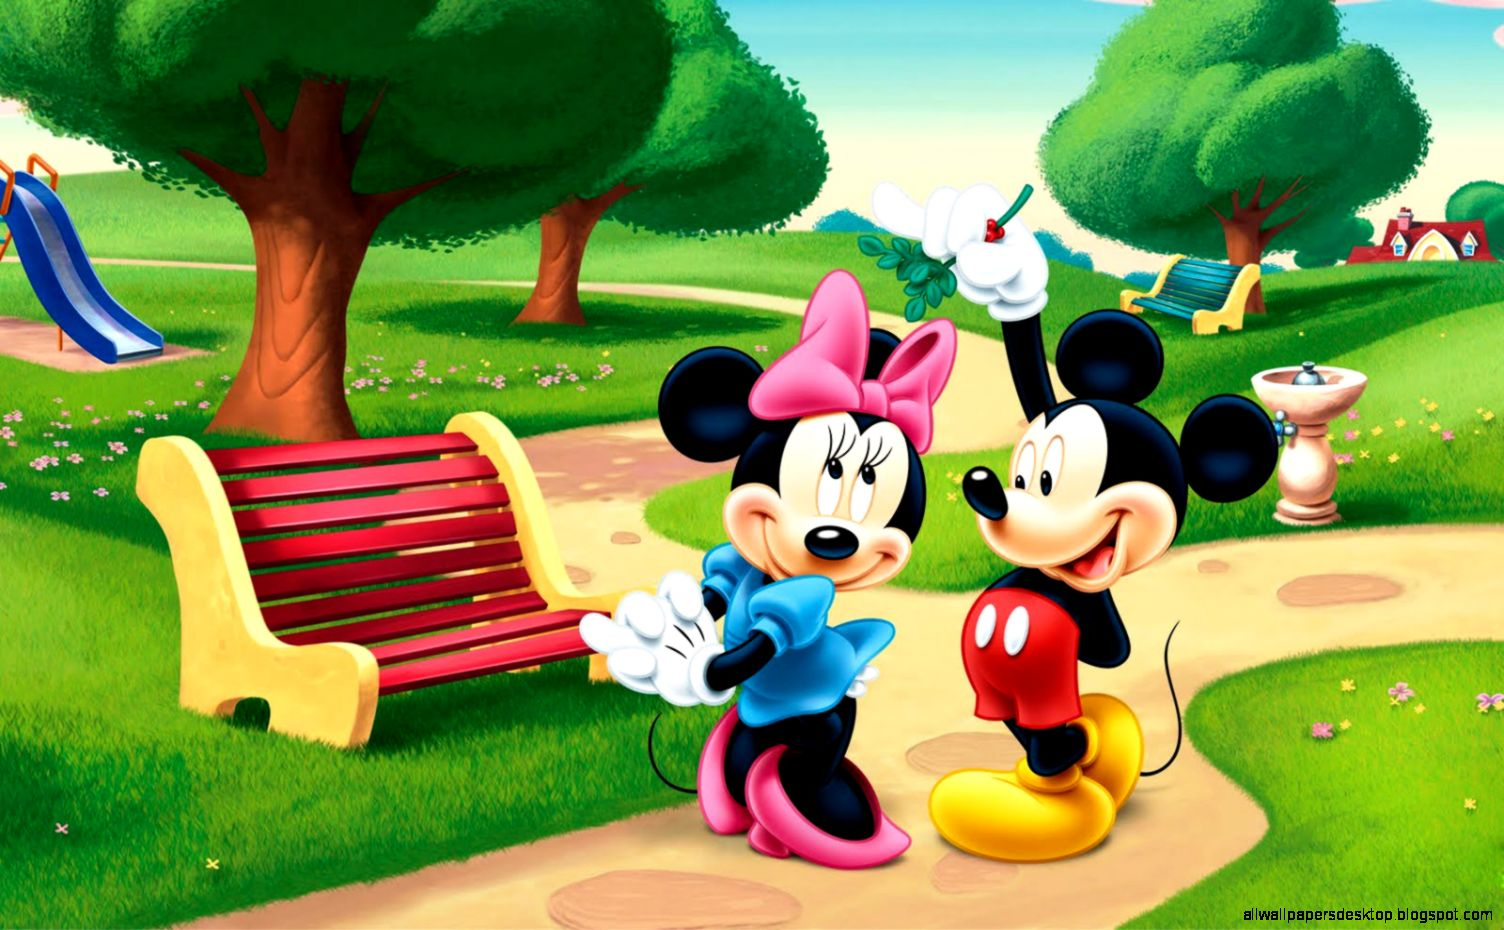 Download   Wallpaper Home Screen Mickey Mouse - mickey-and-minnie-mouse-cartoon-rain-wallpaper-cartoon-hd  You Should Have_834869.jpg